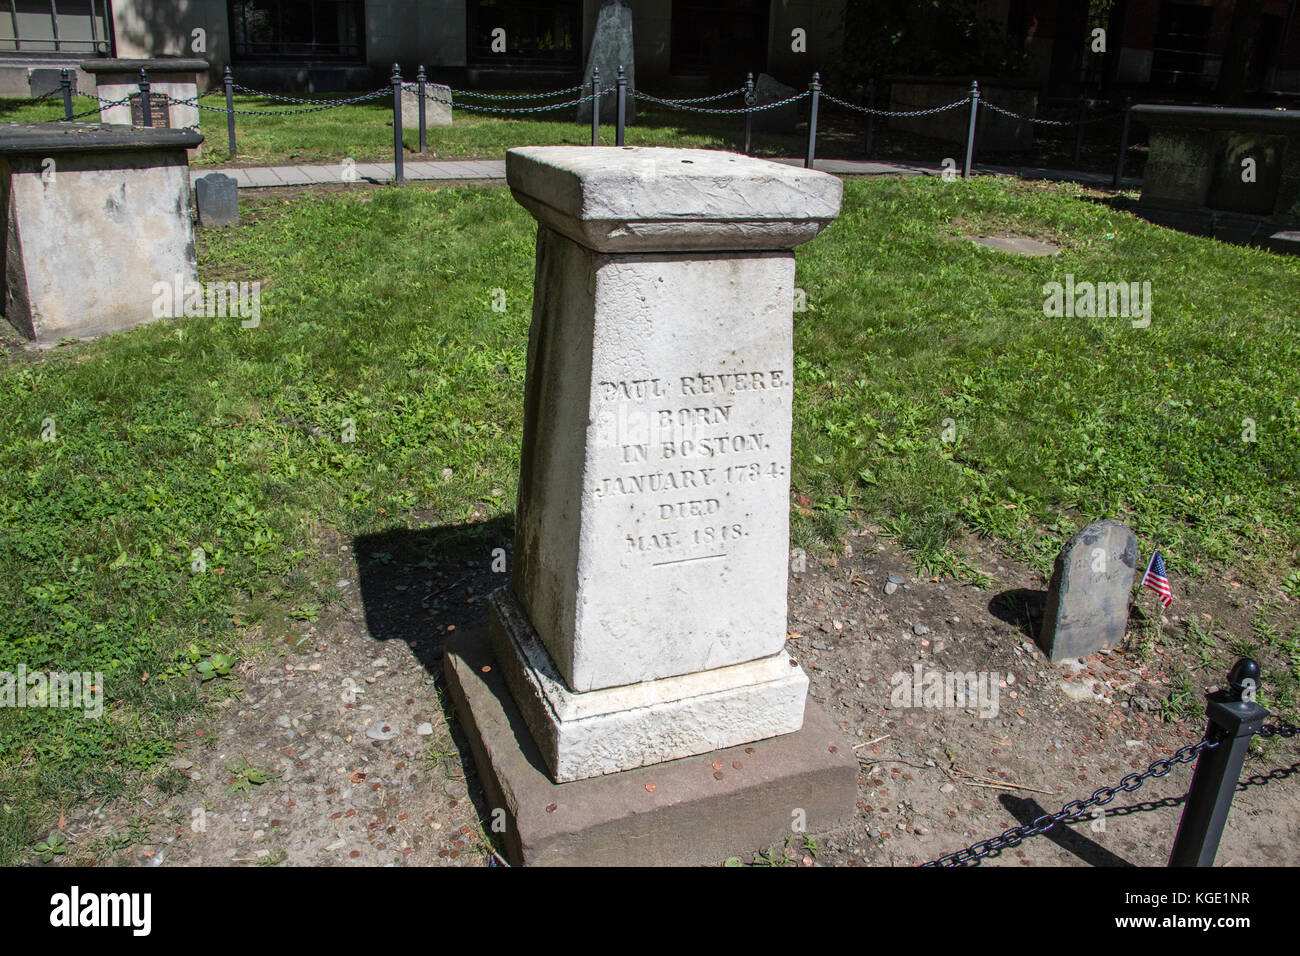 Grave marker of Paul Revere, Granary Burying Ground, Boston, MA, USA - Stock Image